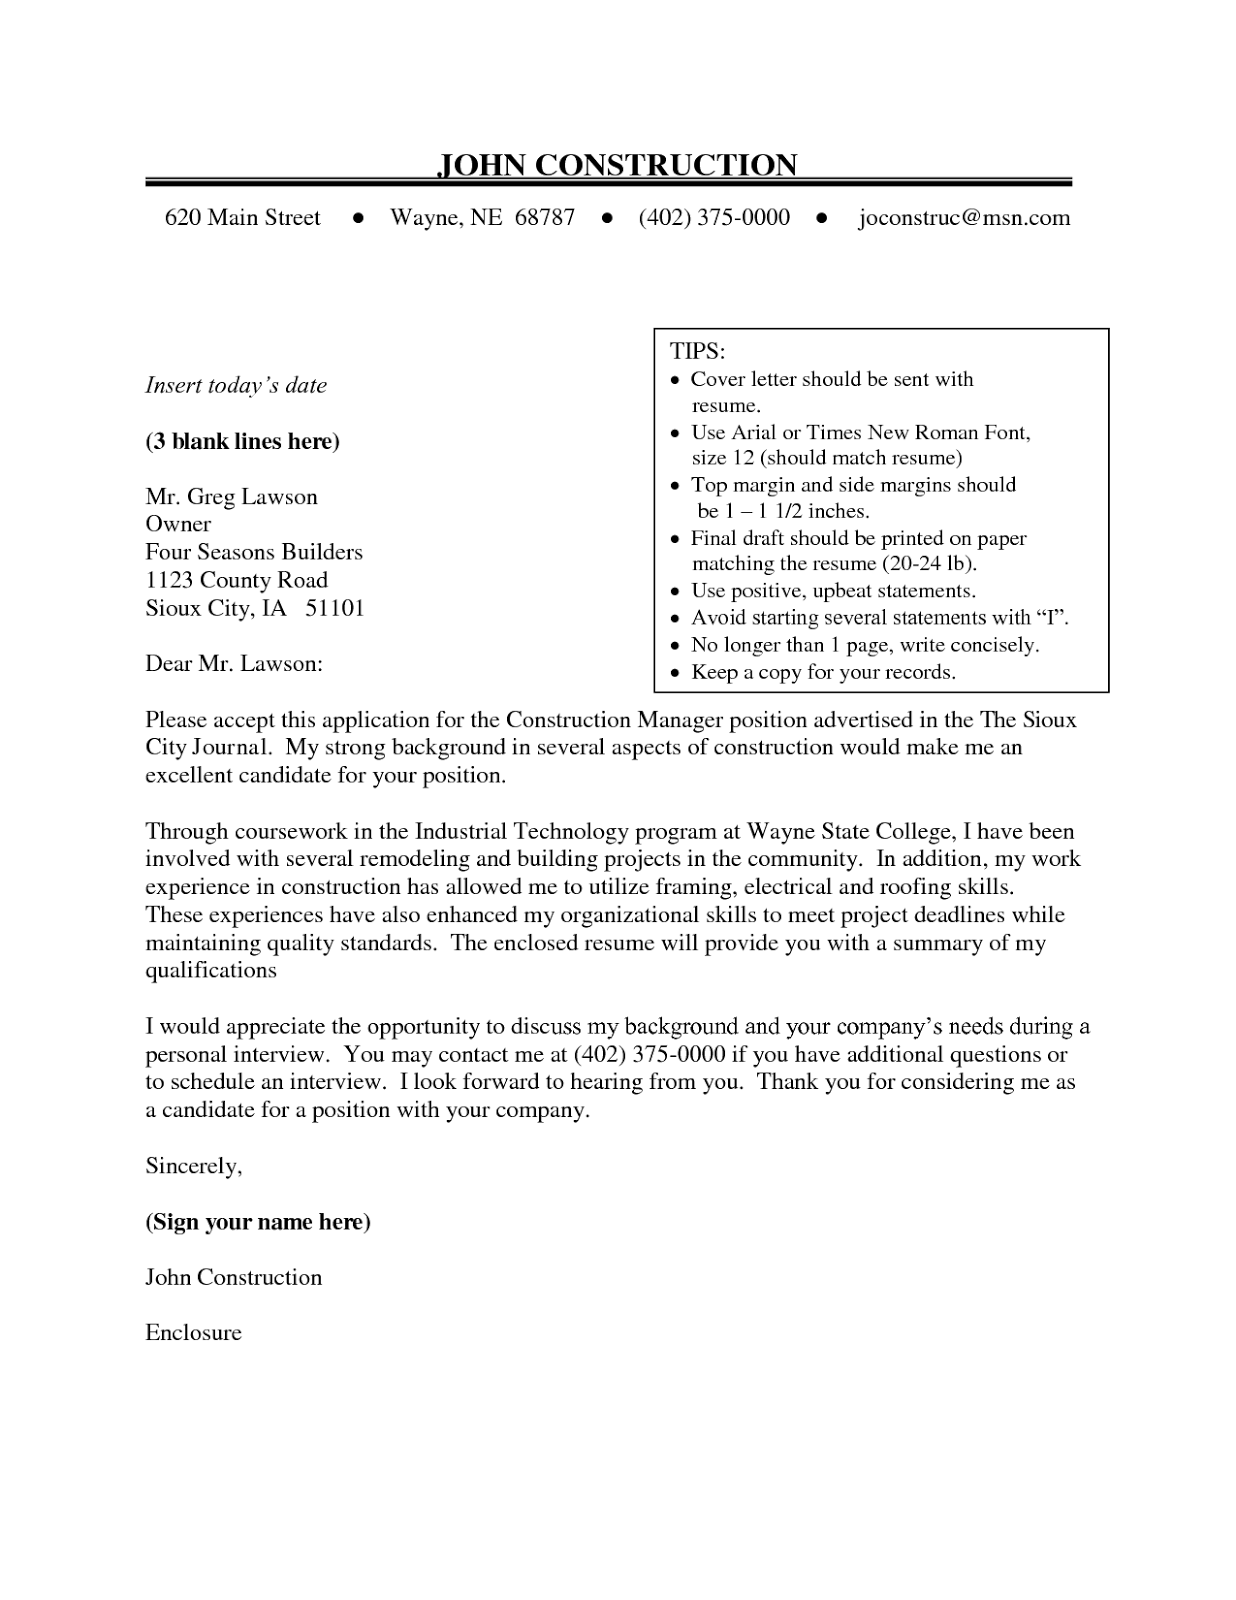 Sample Resume Cover Letter Construction - Tipss und Vorlagen